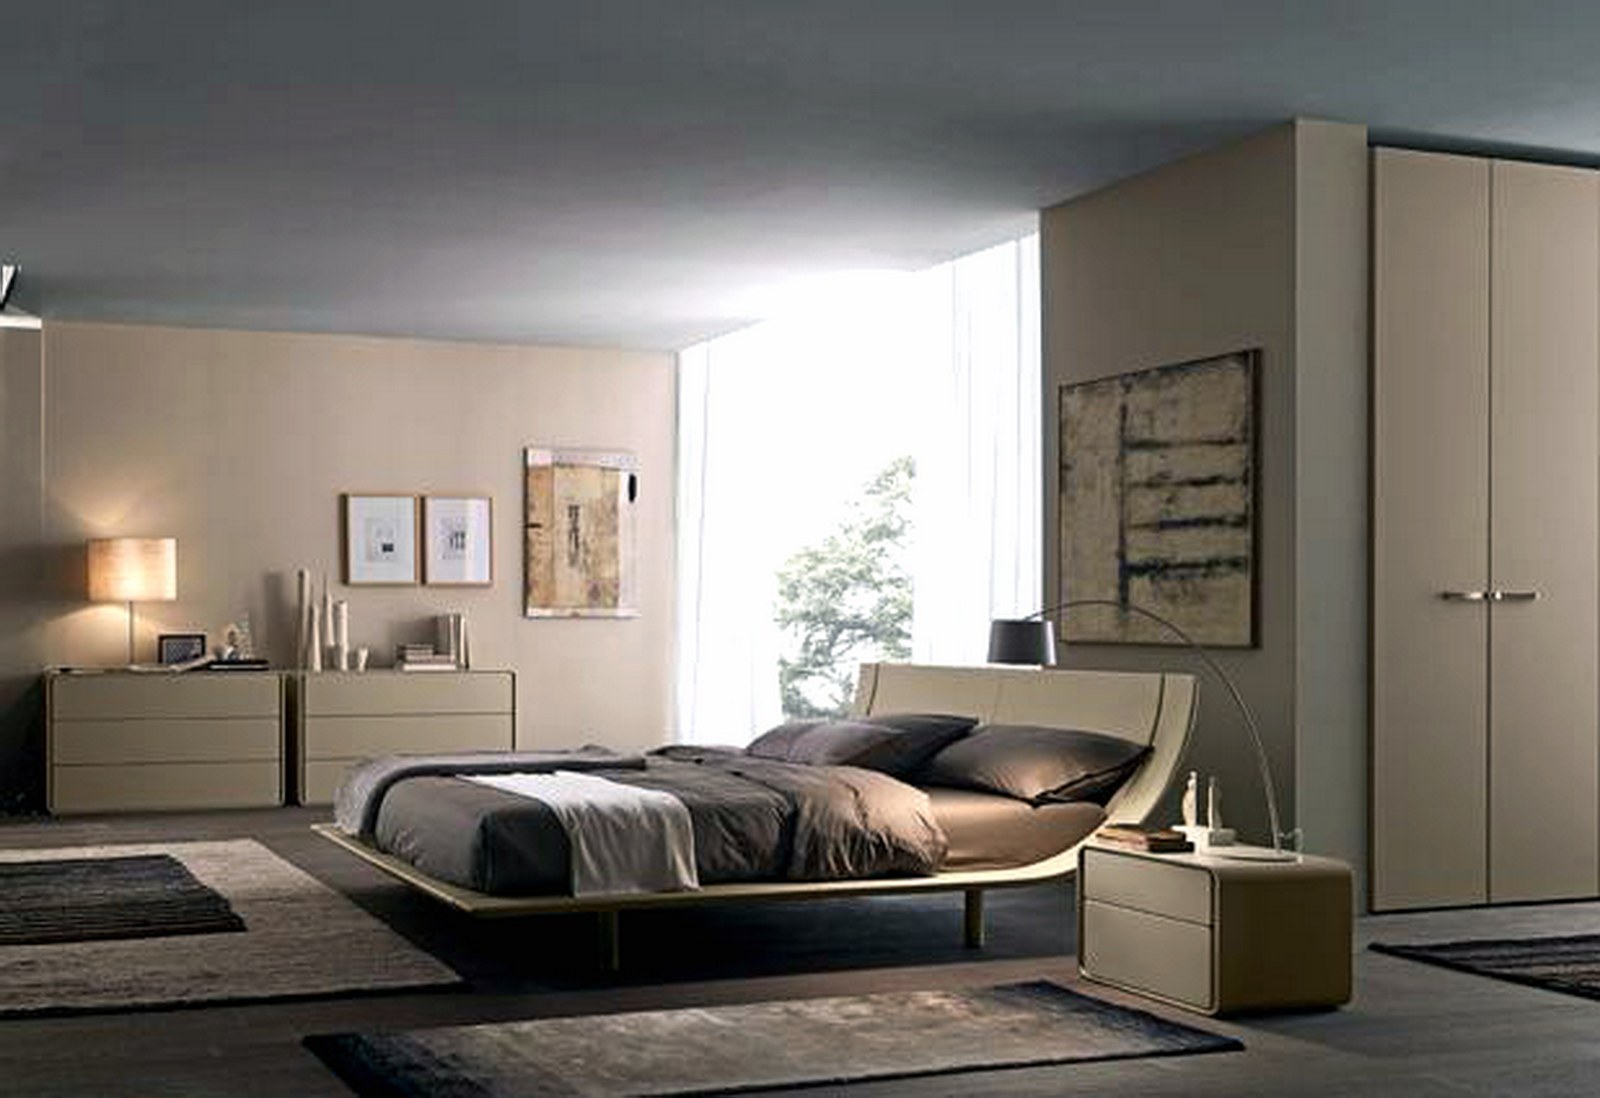 bedrooms9_resize.png